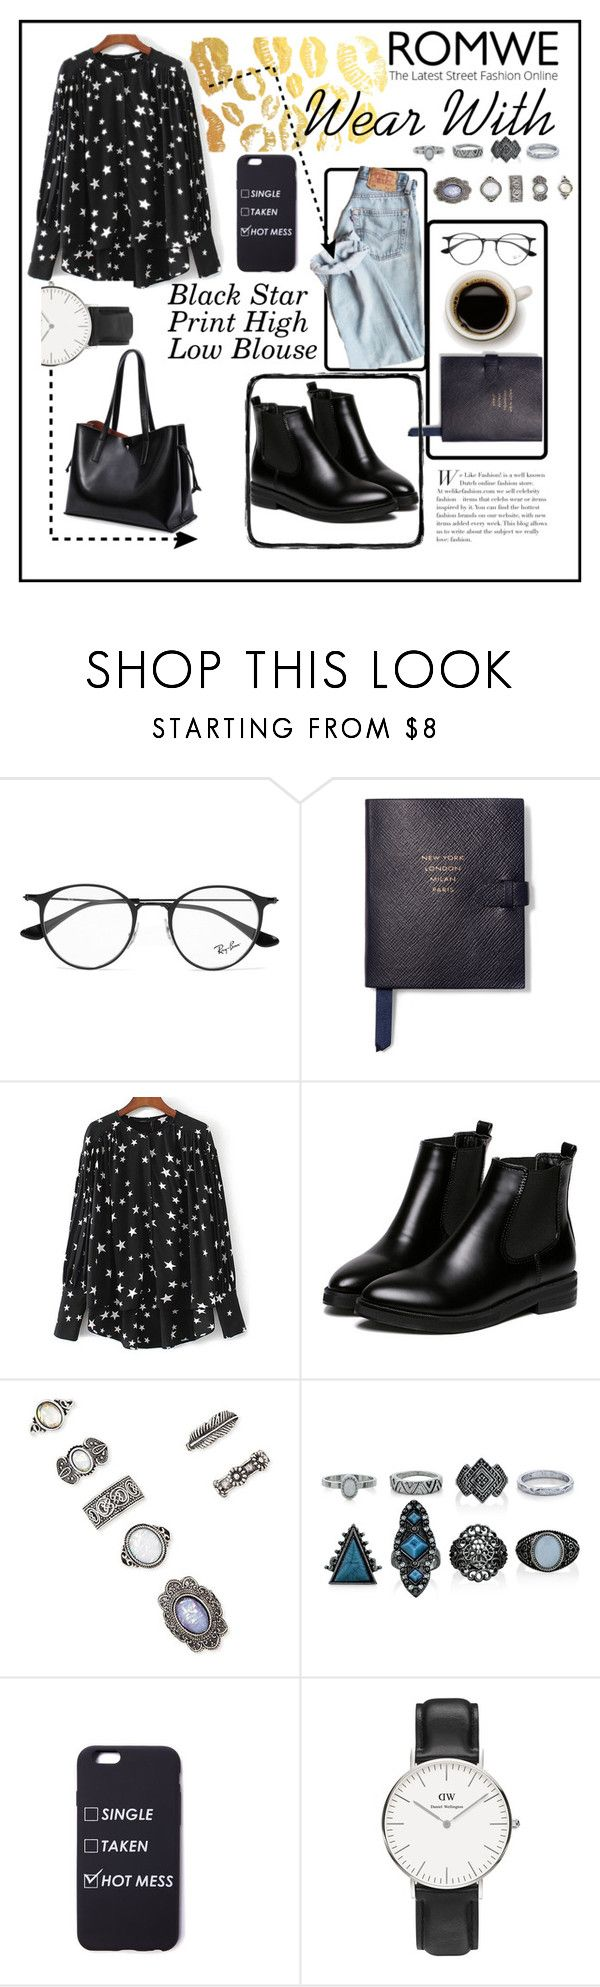 """Black  Star Shirt"" by dchatzin ❤ liked on Polyvore featuring Ray-Ban, Smythson, WithChic, Forever 21, New Look, Daniel Wellington and blackonly"